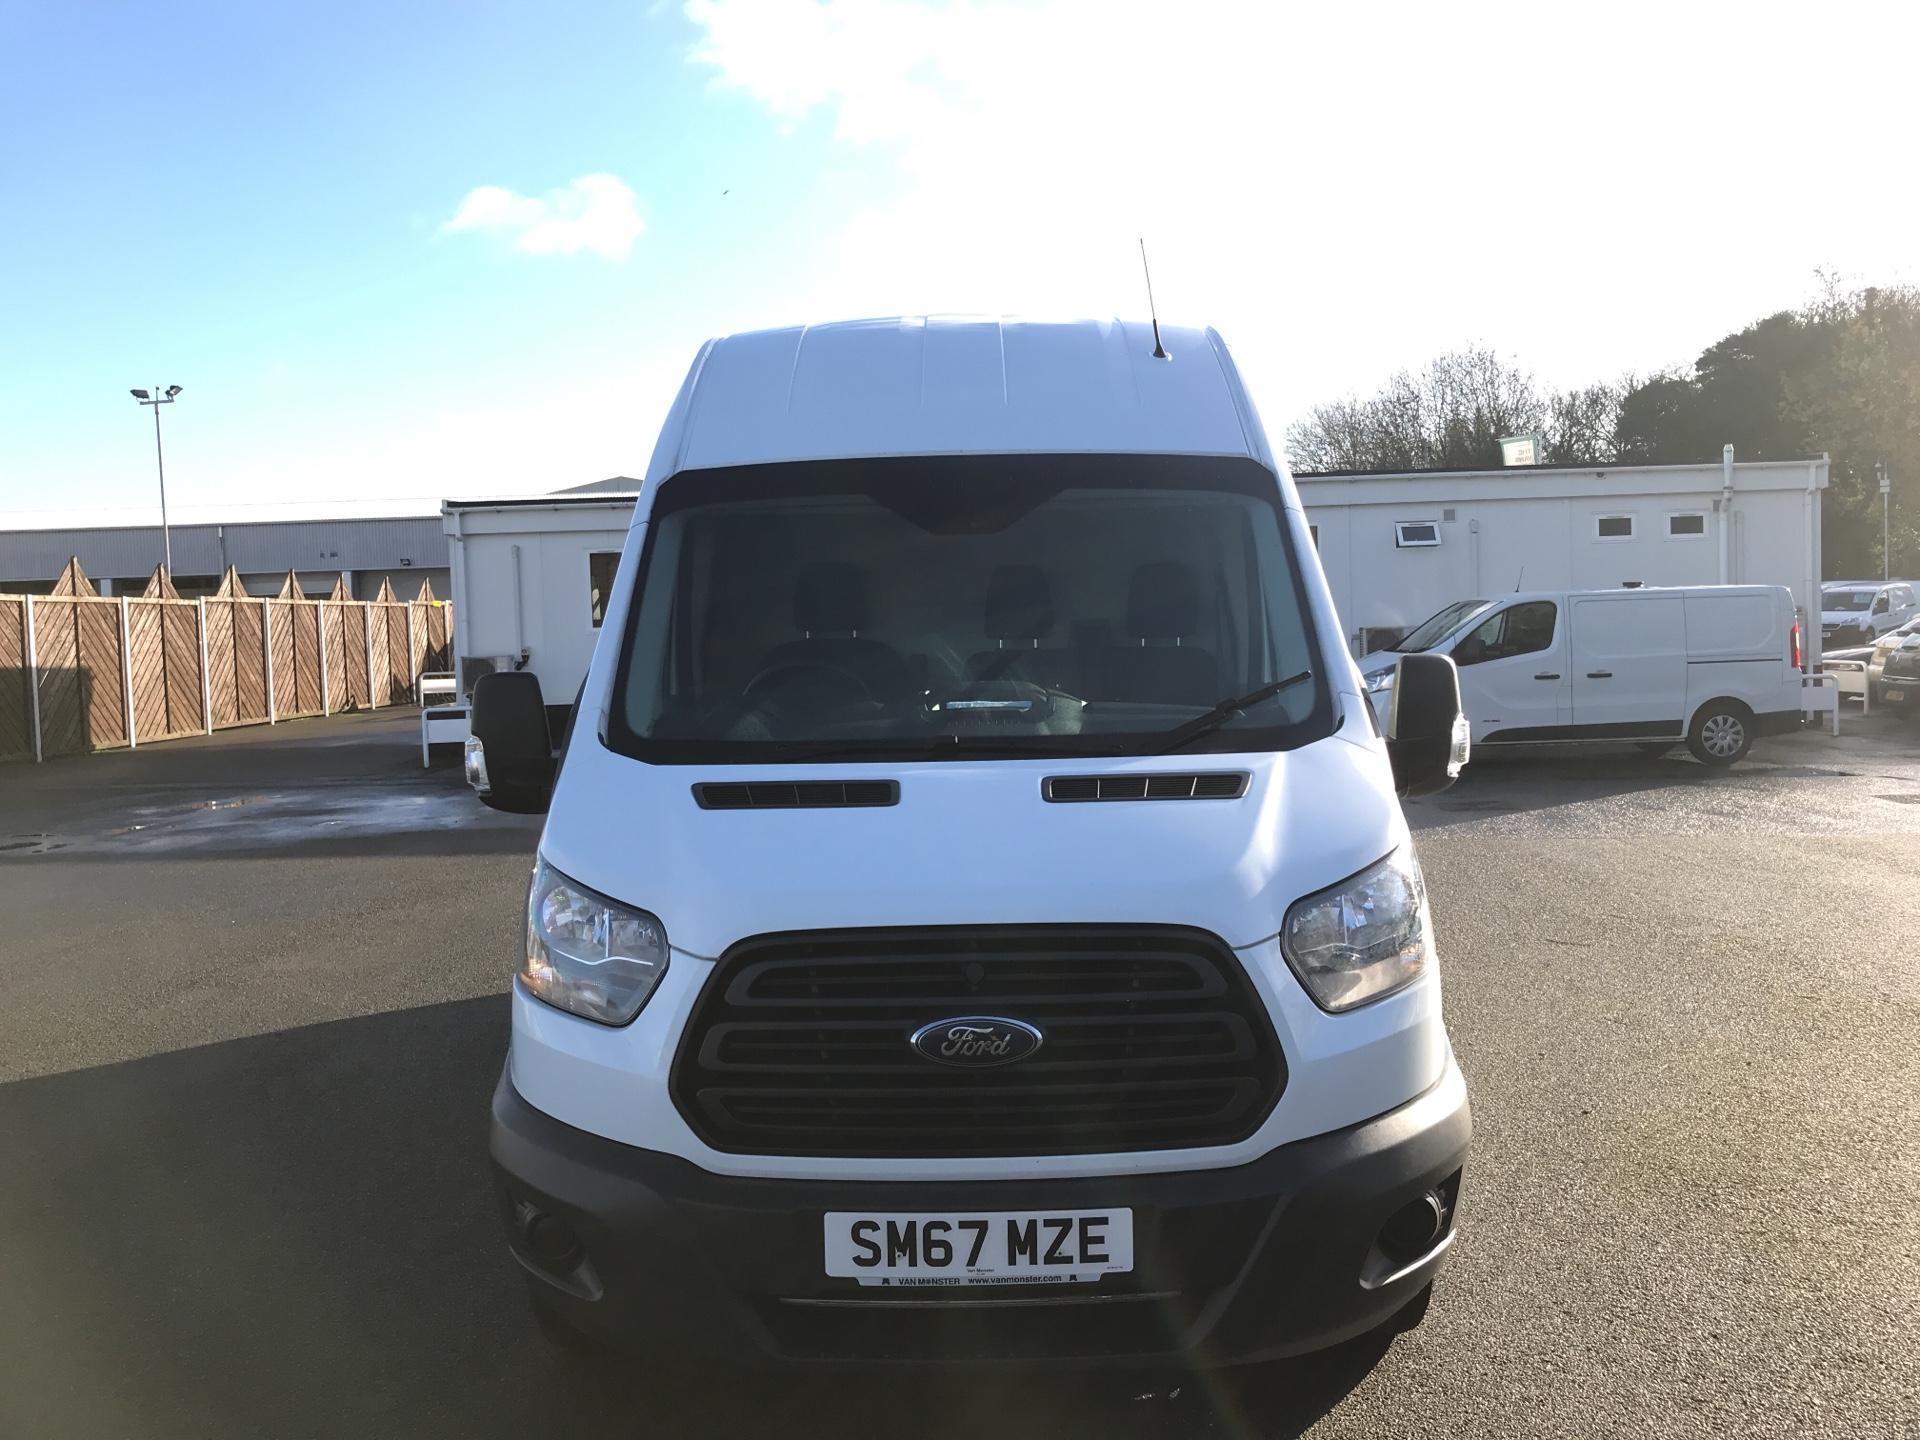 2018 Ford Transit L3 H3 VAN 130PS EURO 6  *VALUE RANGE VEHICLE - CONDITION REFLECTED IN PRICE*  (SM67MZE) Image 8